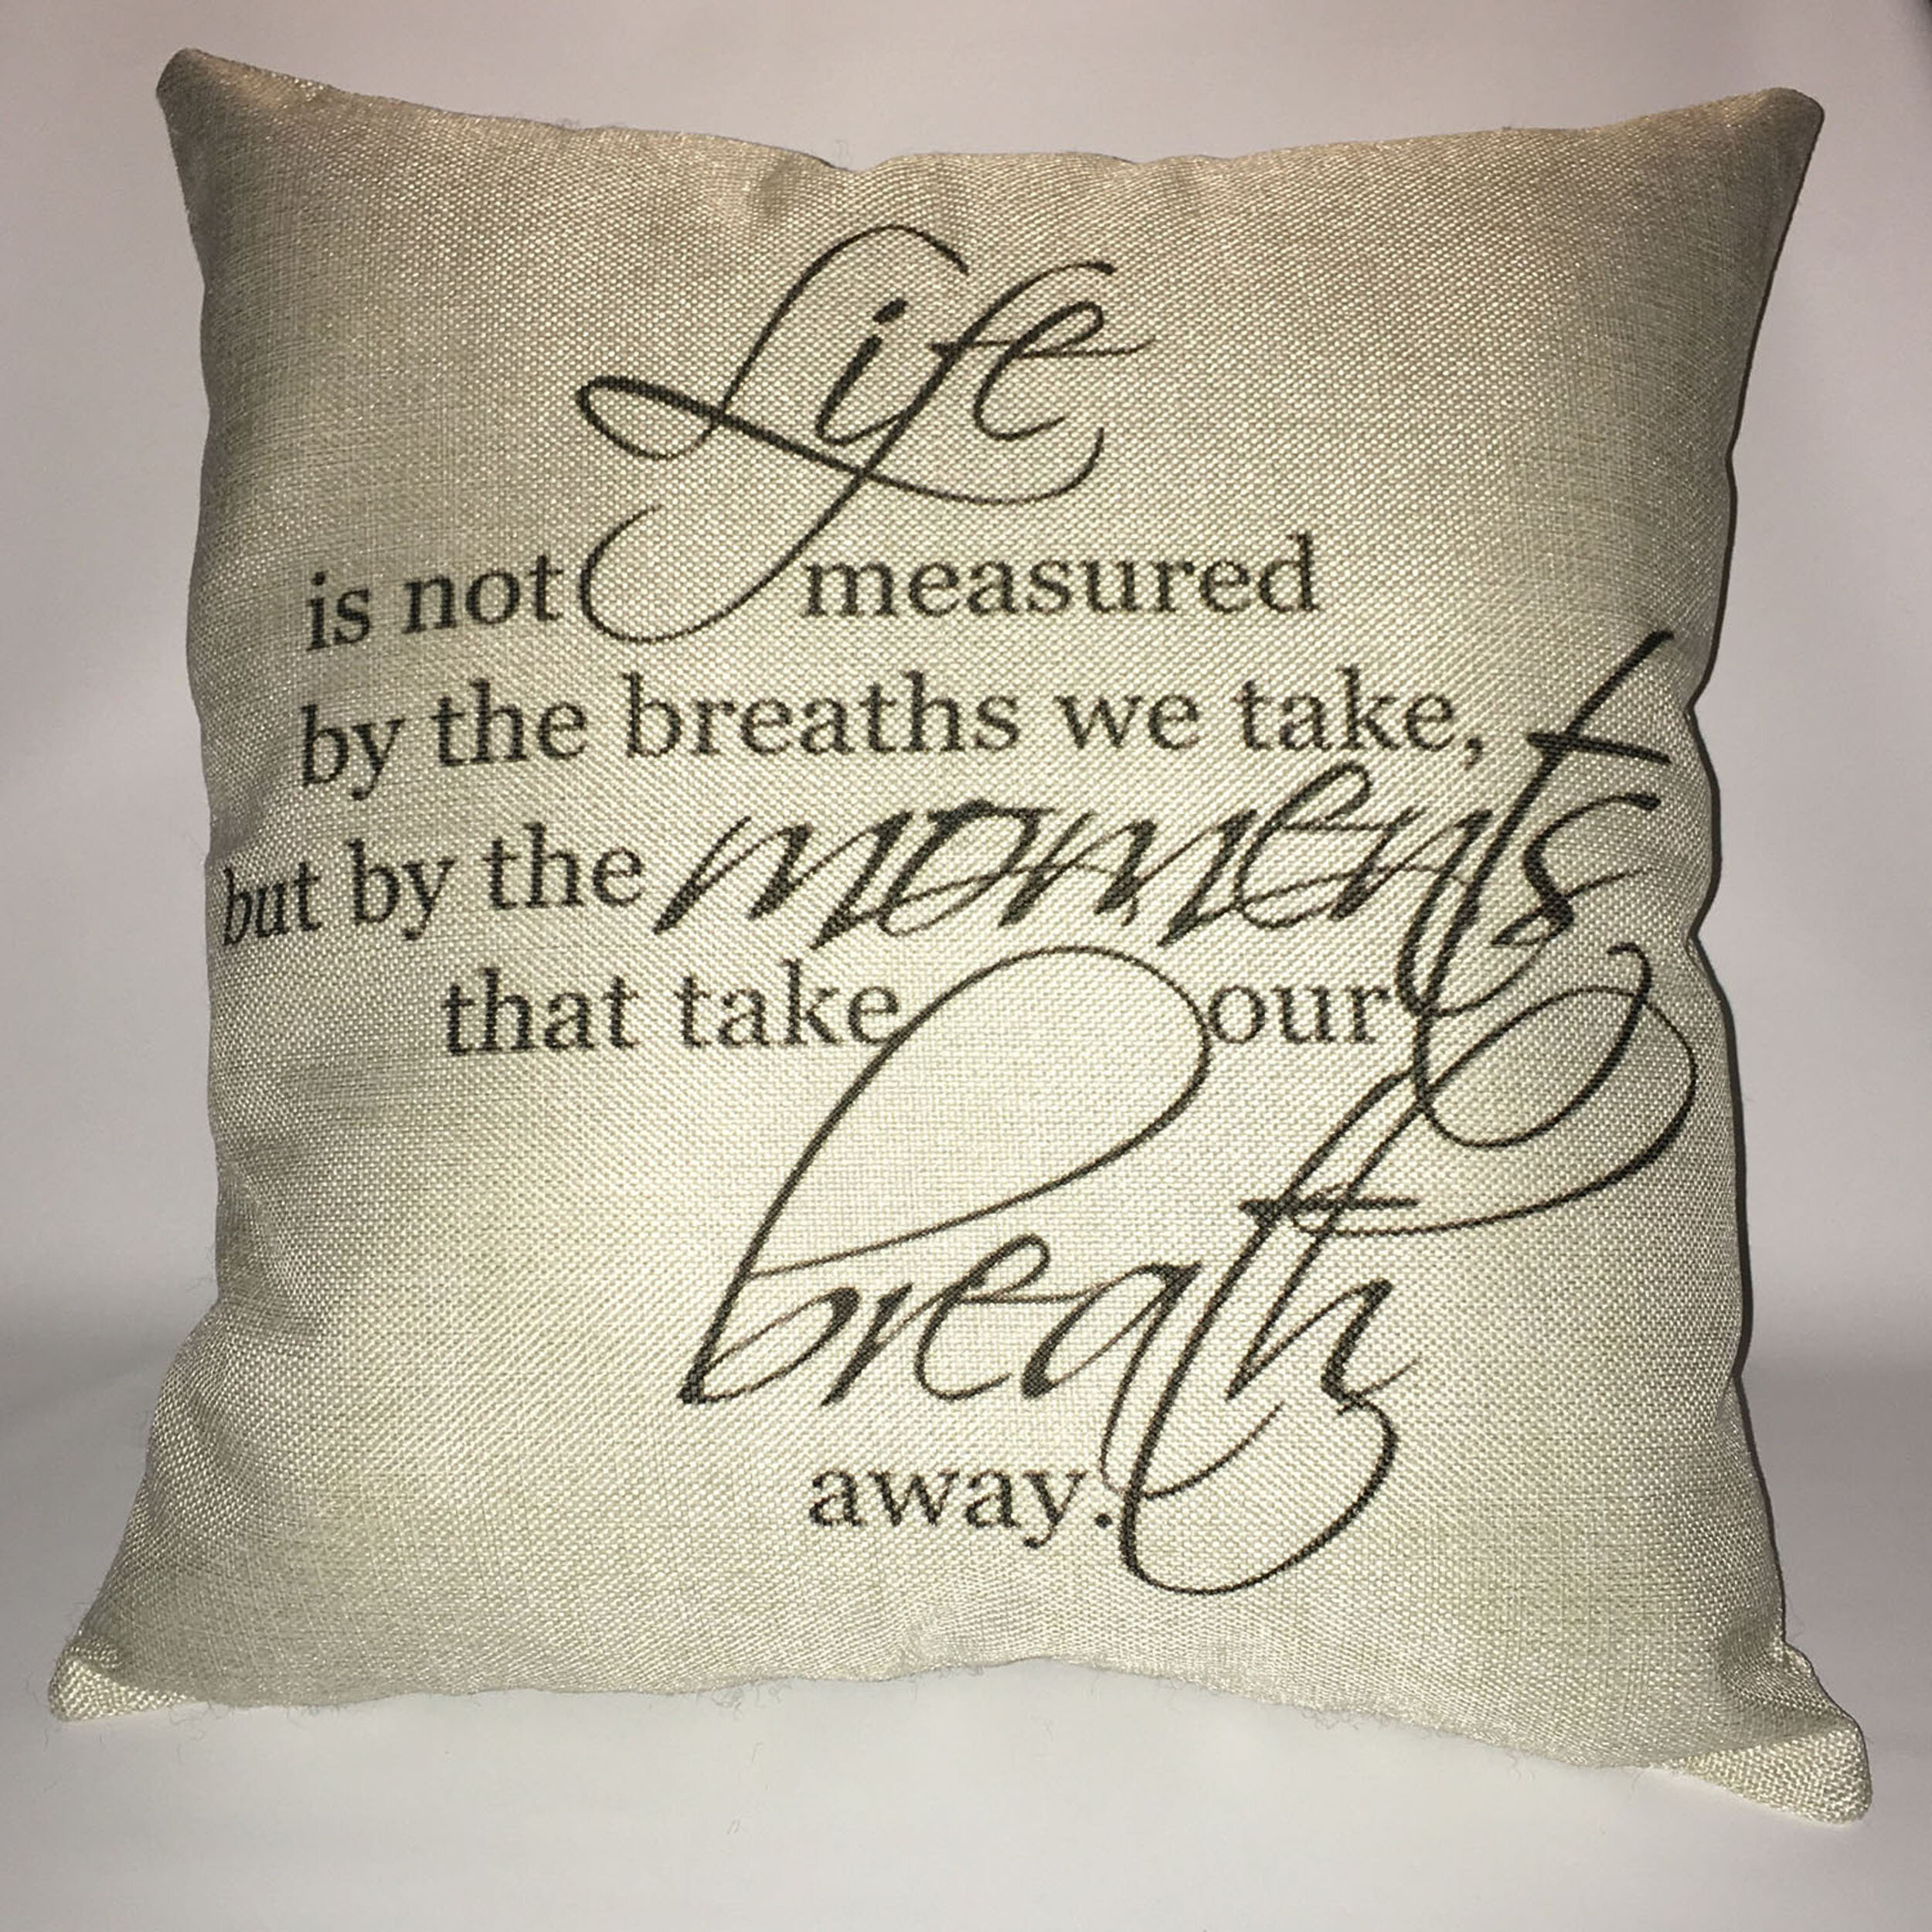 Red Barrel Studio Kendrick How Is Life Measured Breath Cotton Throw Pillow Reviews Wayfair